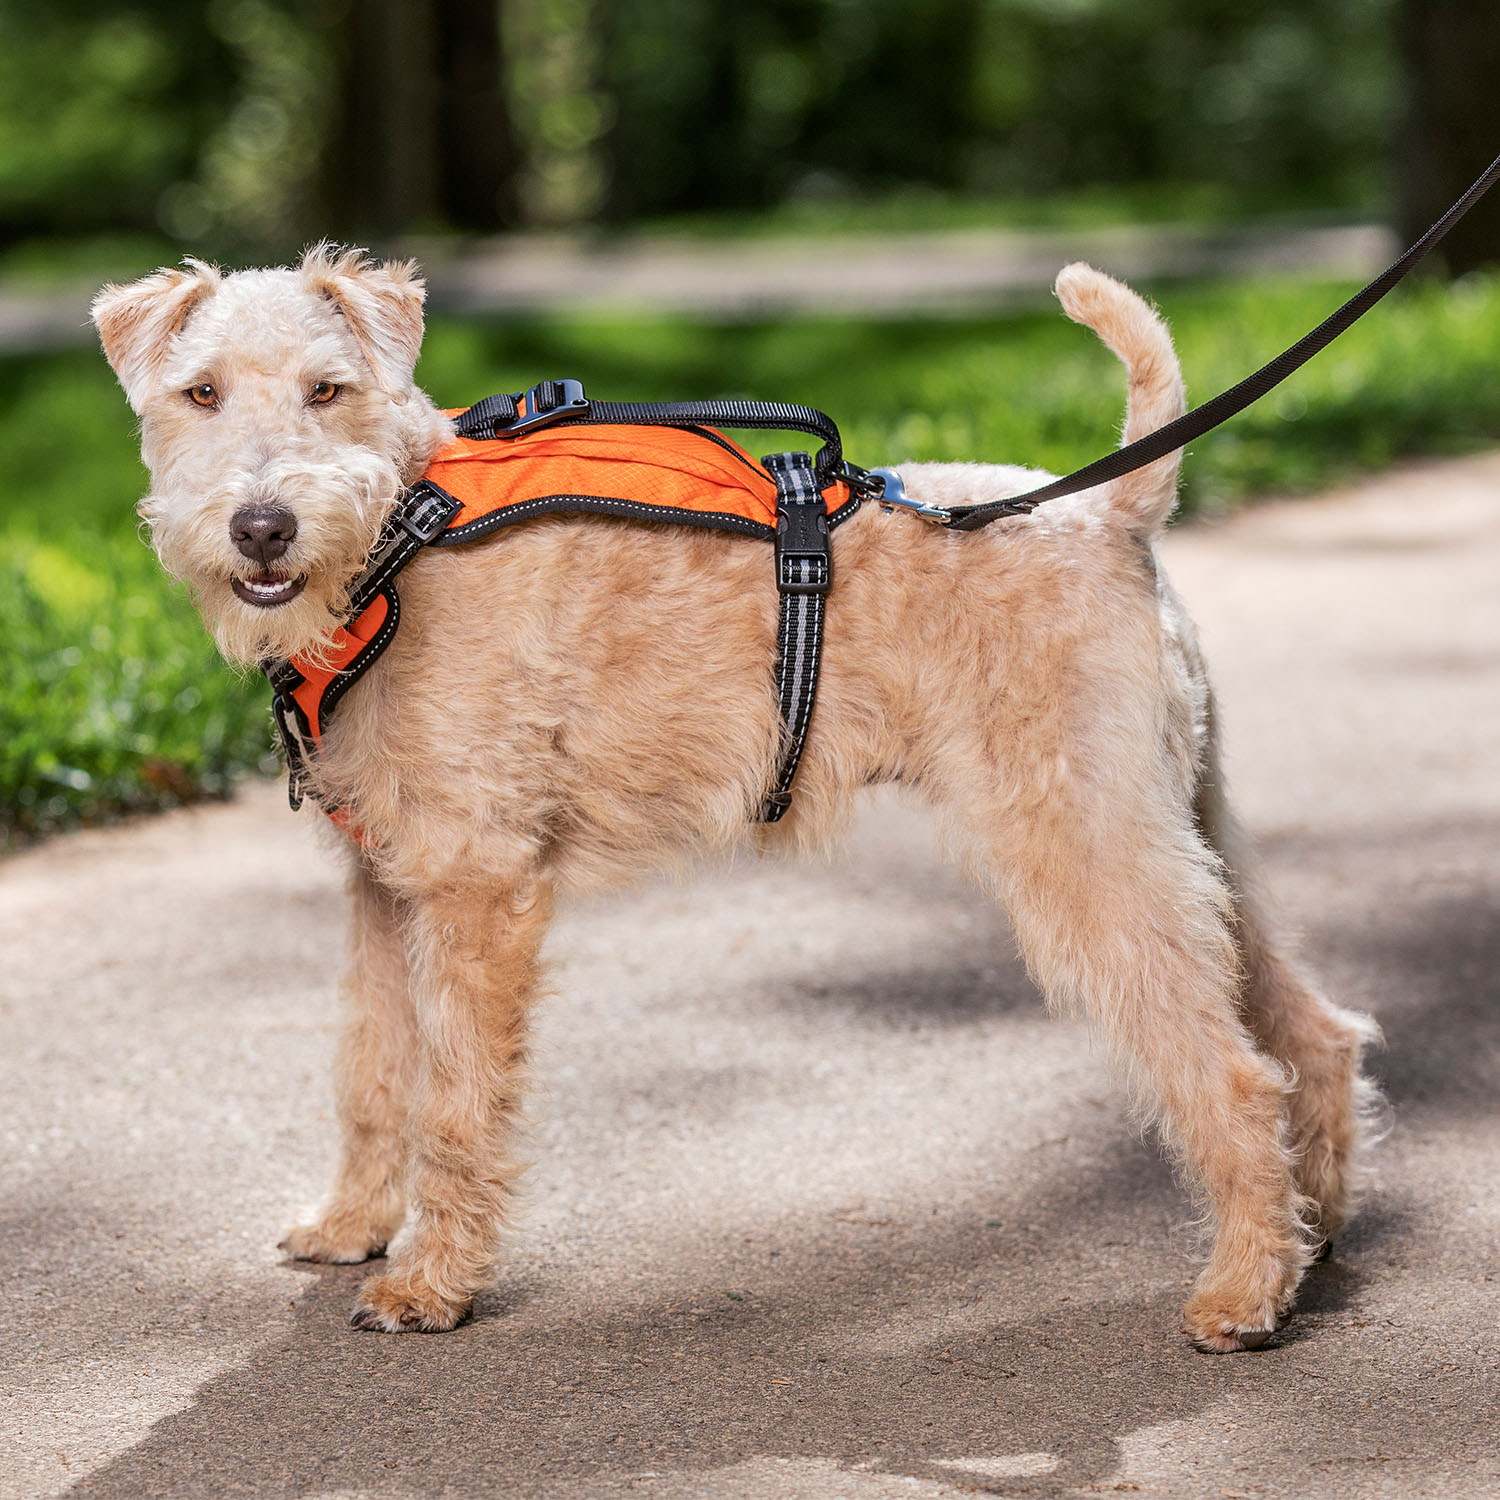 pet awards 2020 runner-up products - dog wearing a harness